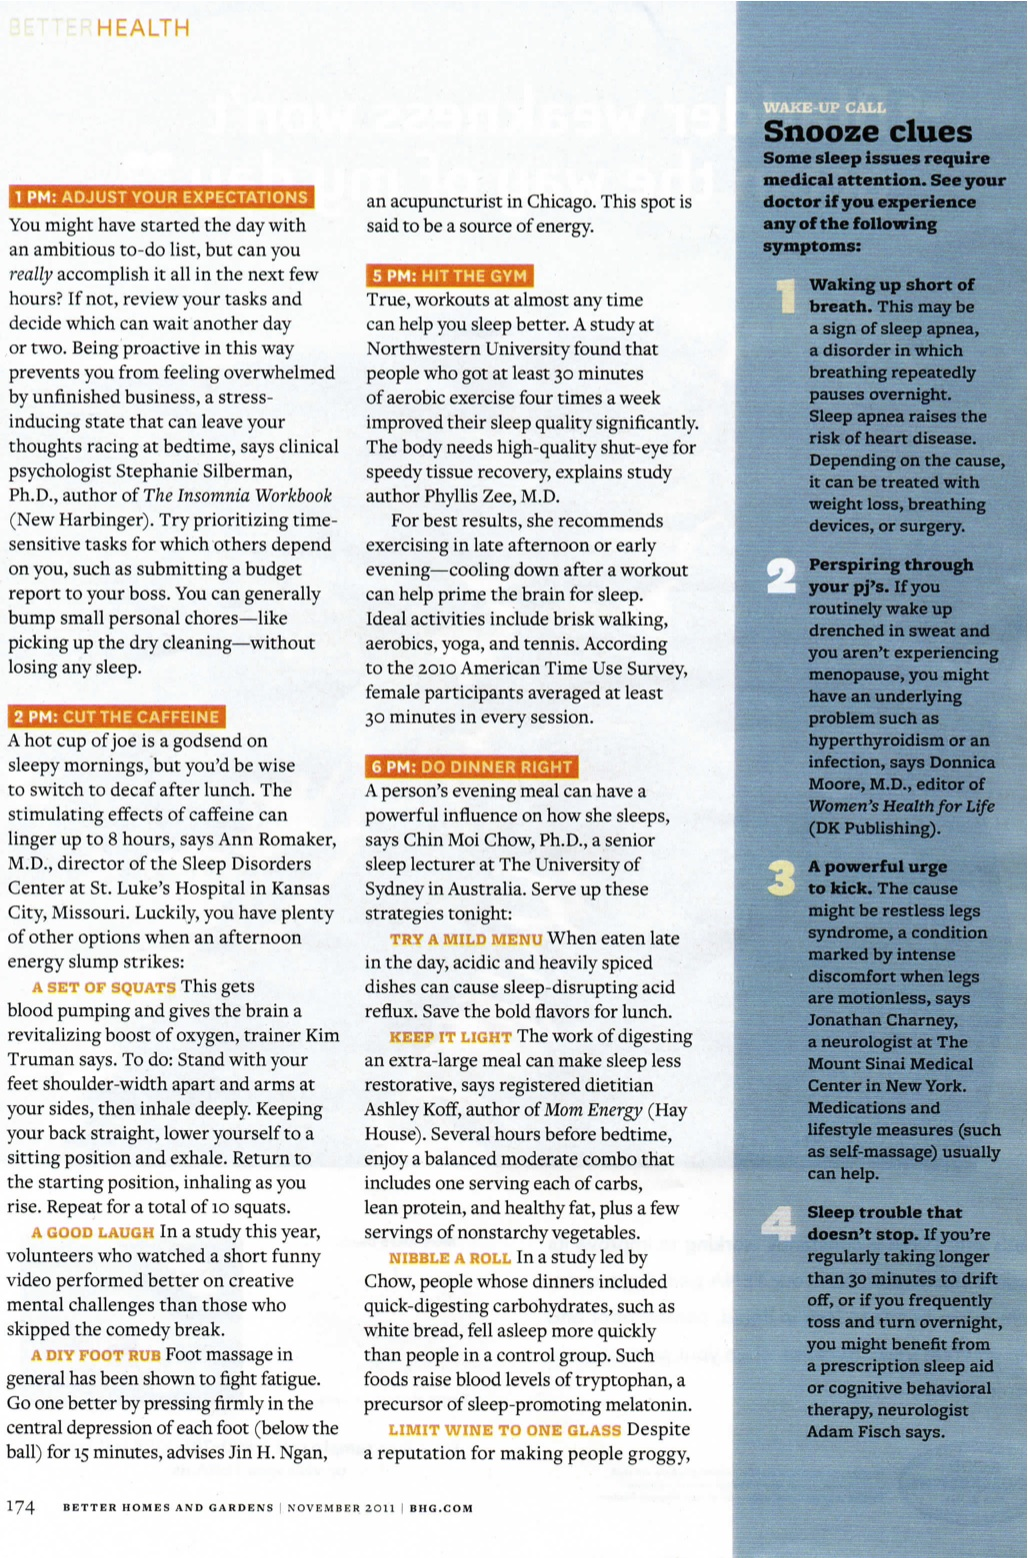 Featured page of Kim Truman in November 2011 Issue of Better Homes & Gardens